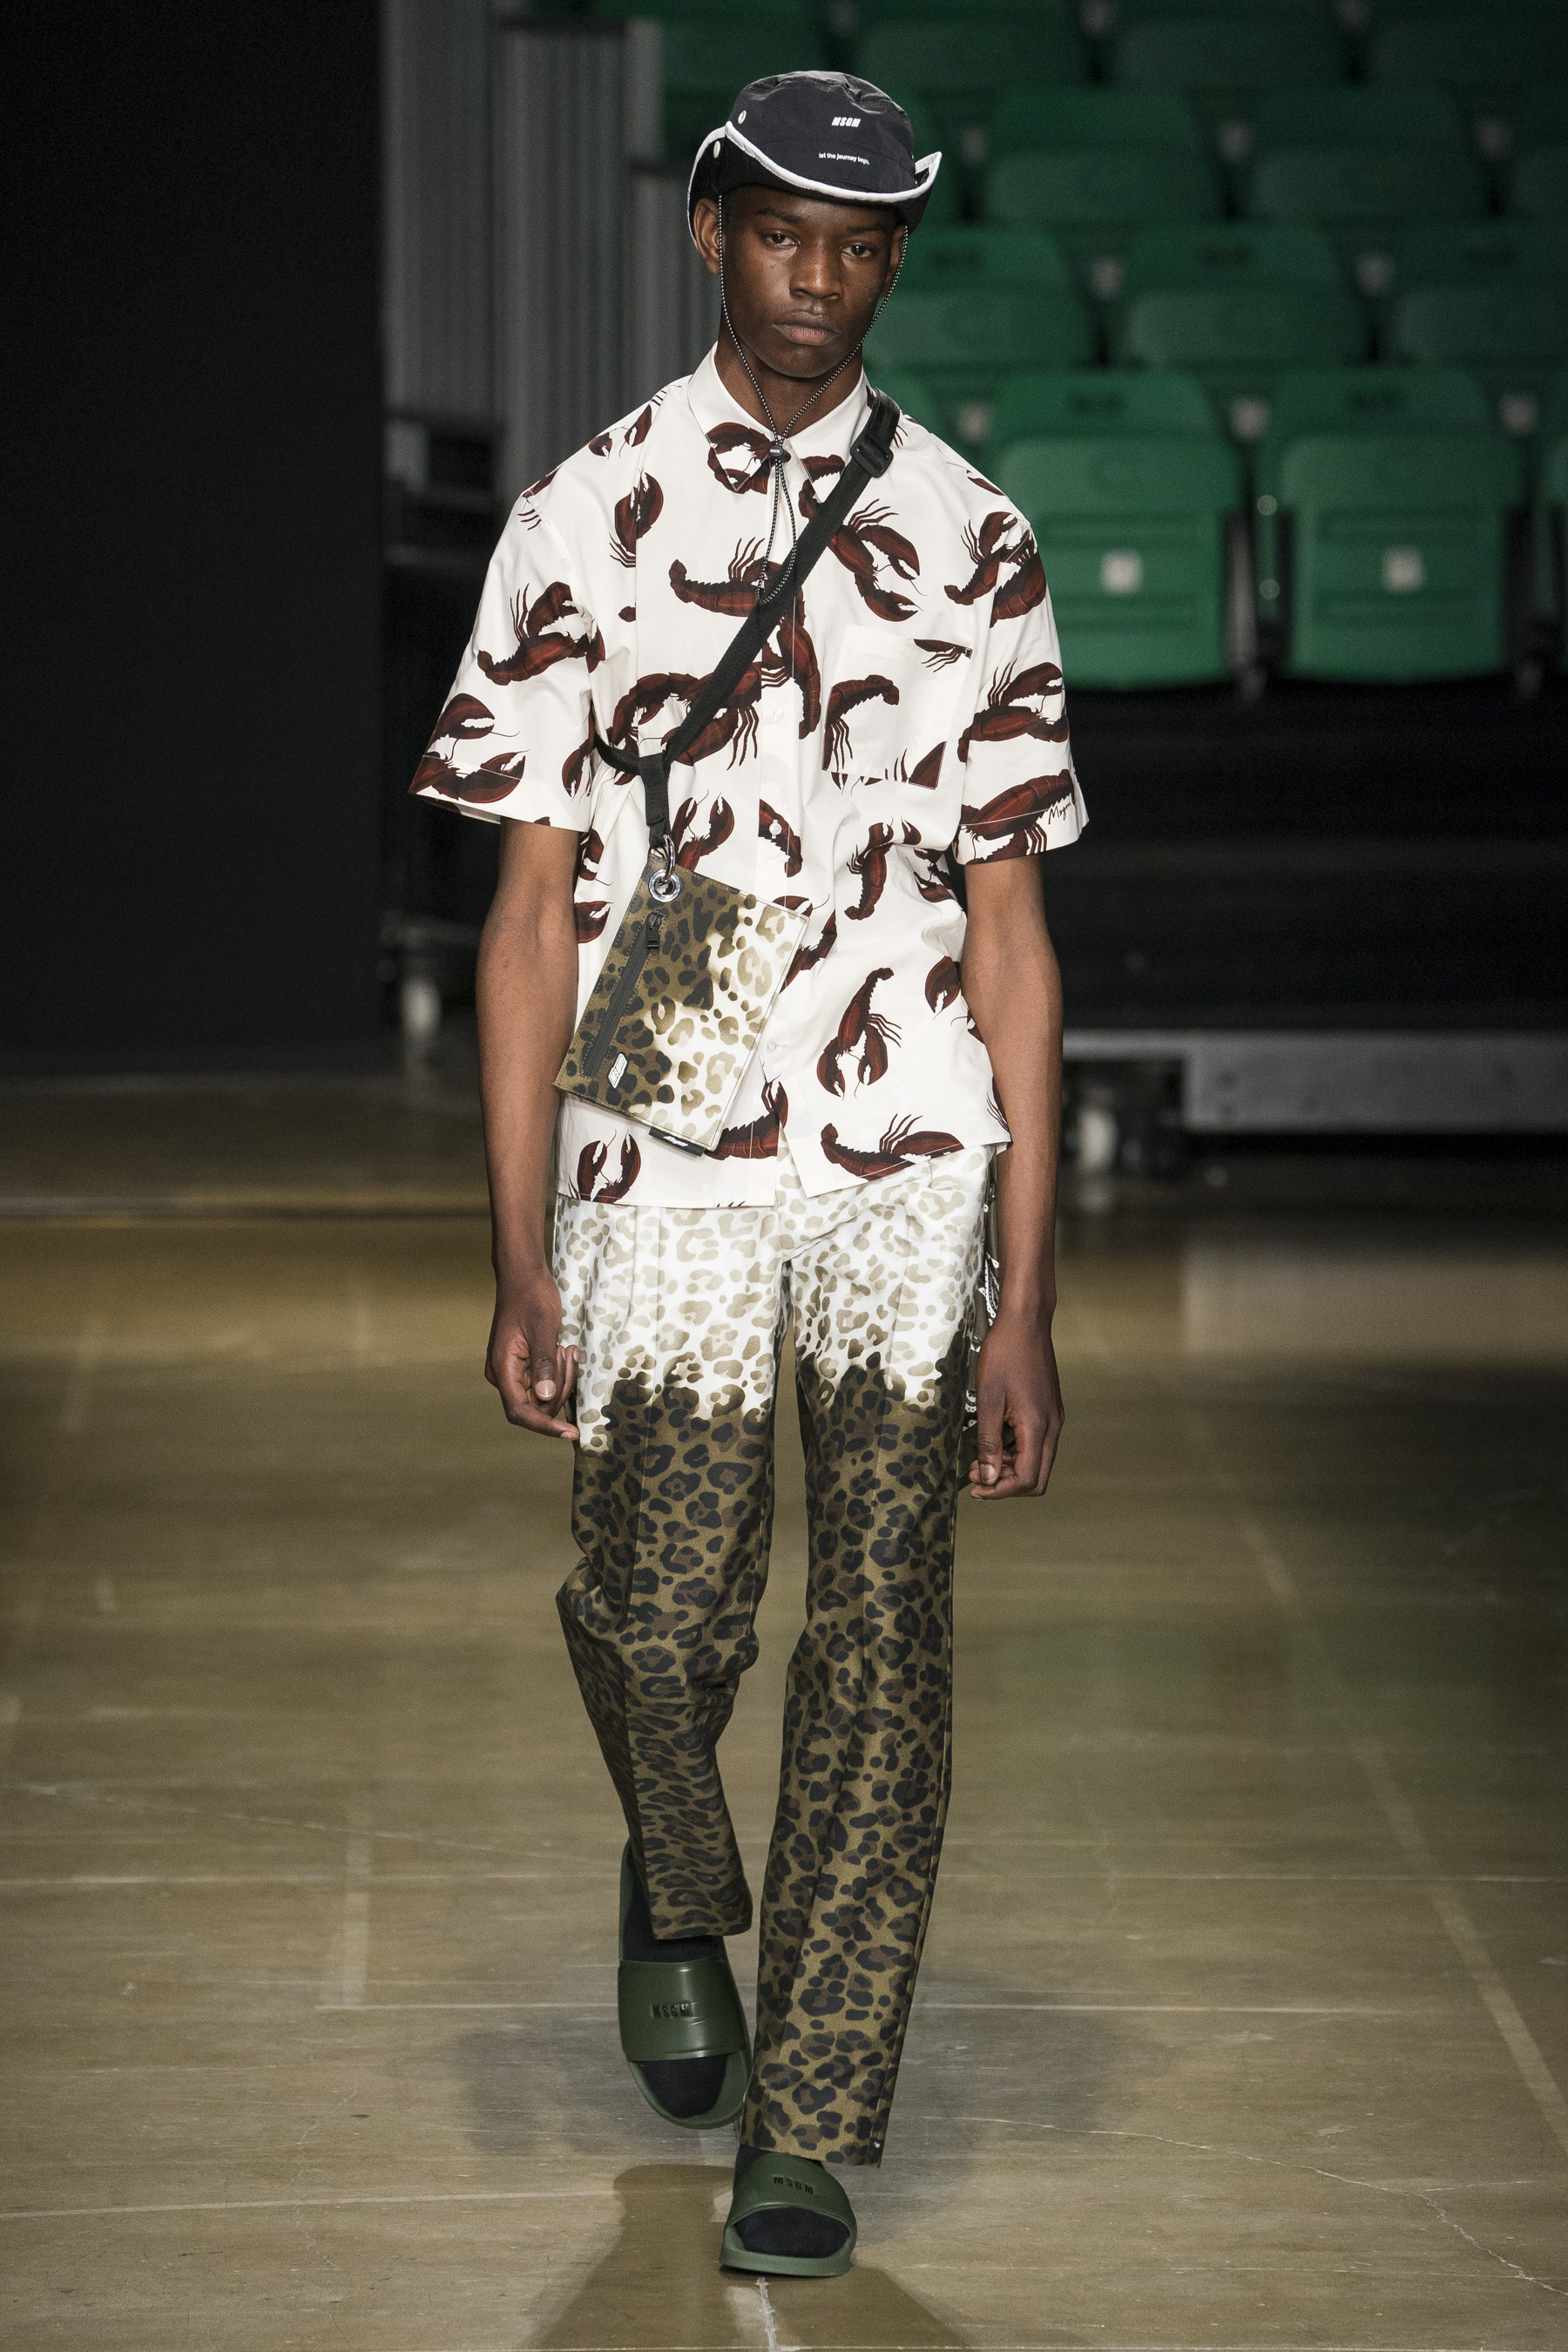 Spring 2020 Menswear Fashion Trend